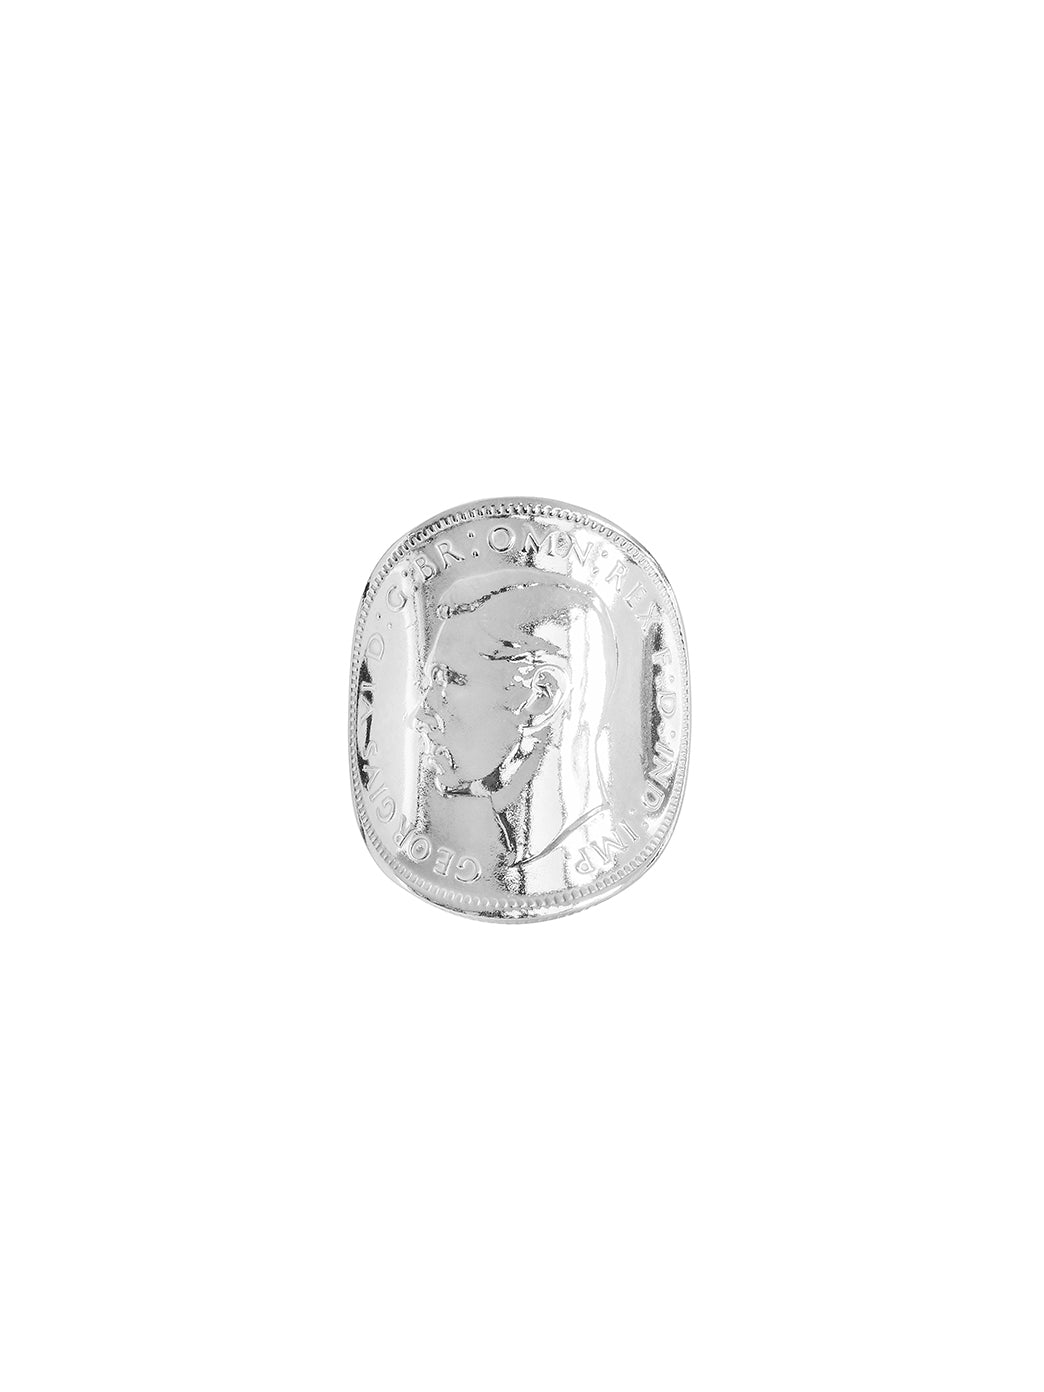 Fiorina Jewellery Bent Coin Ring